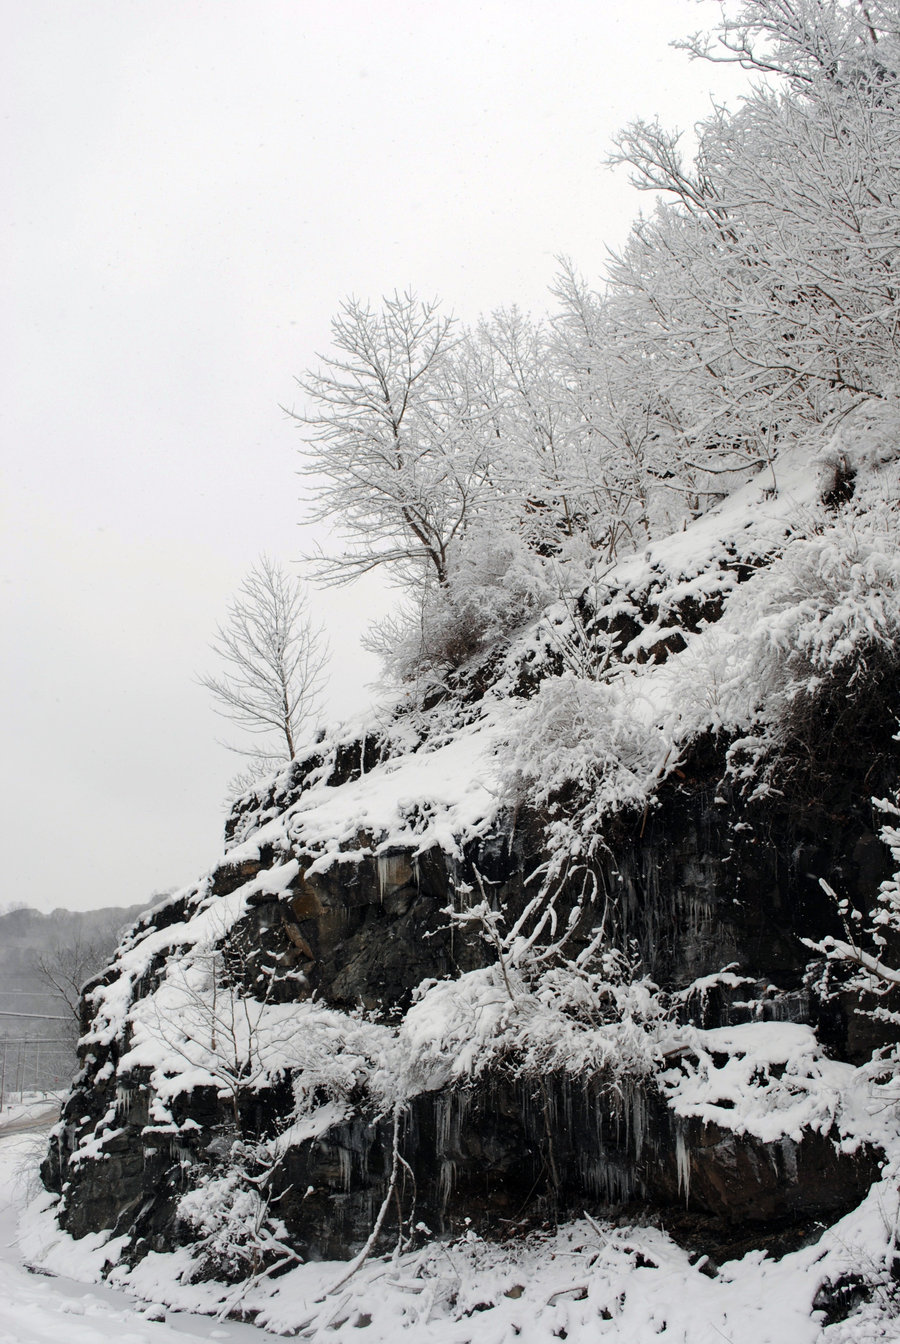 Snowy_Cliffside_by_Bawwomick.jpg